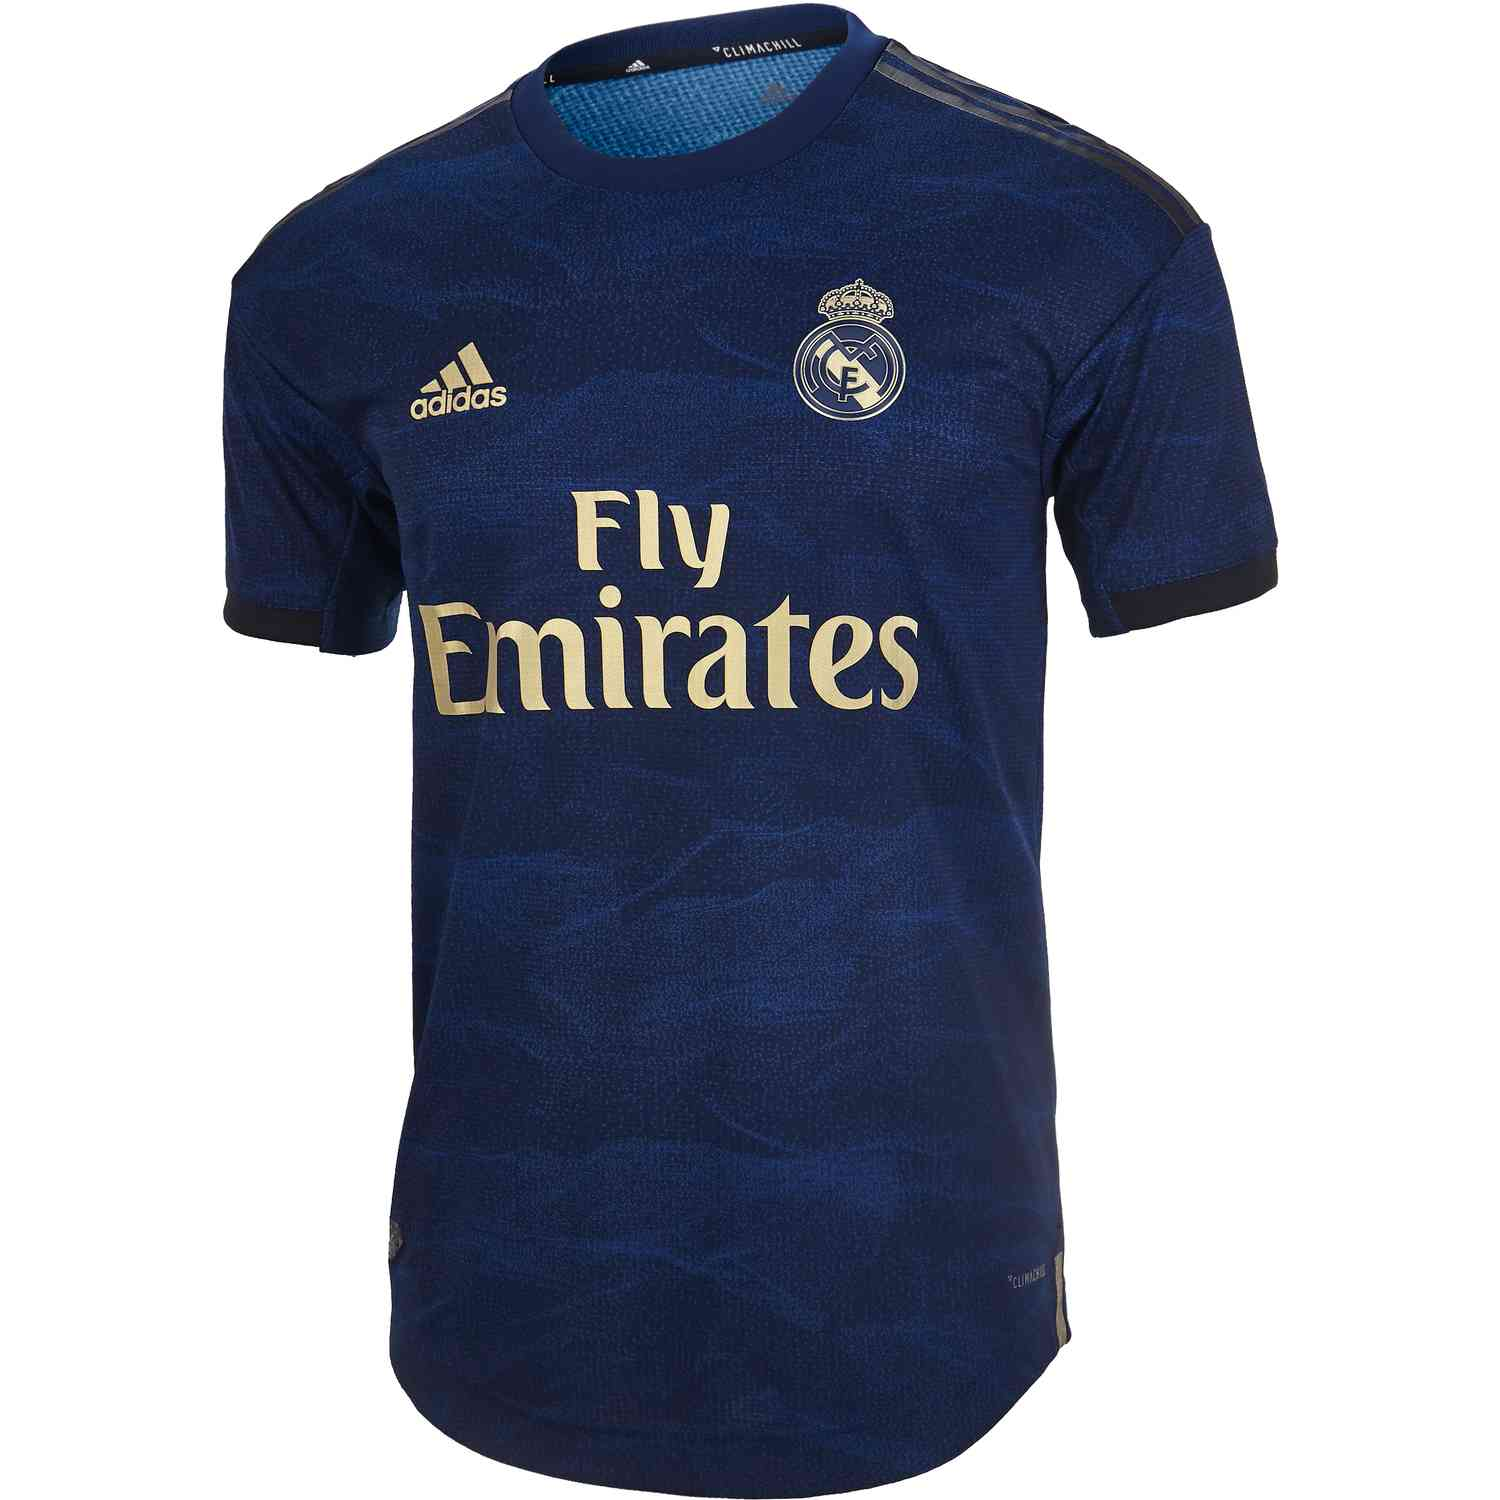 new product 6a590 1b47f 2019/20 adidas Real Madrid Away Authentic Jersey